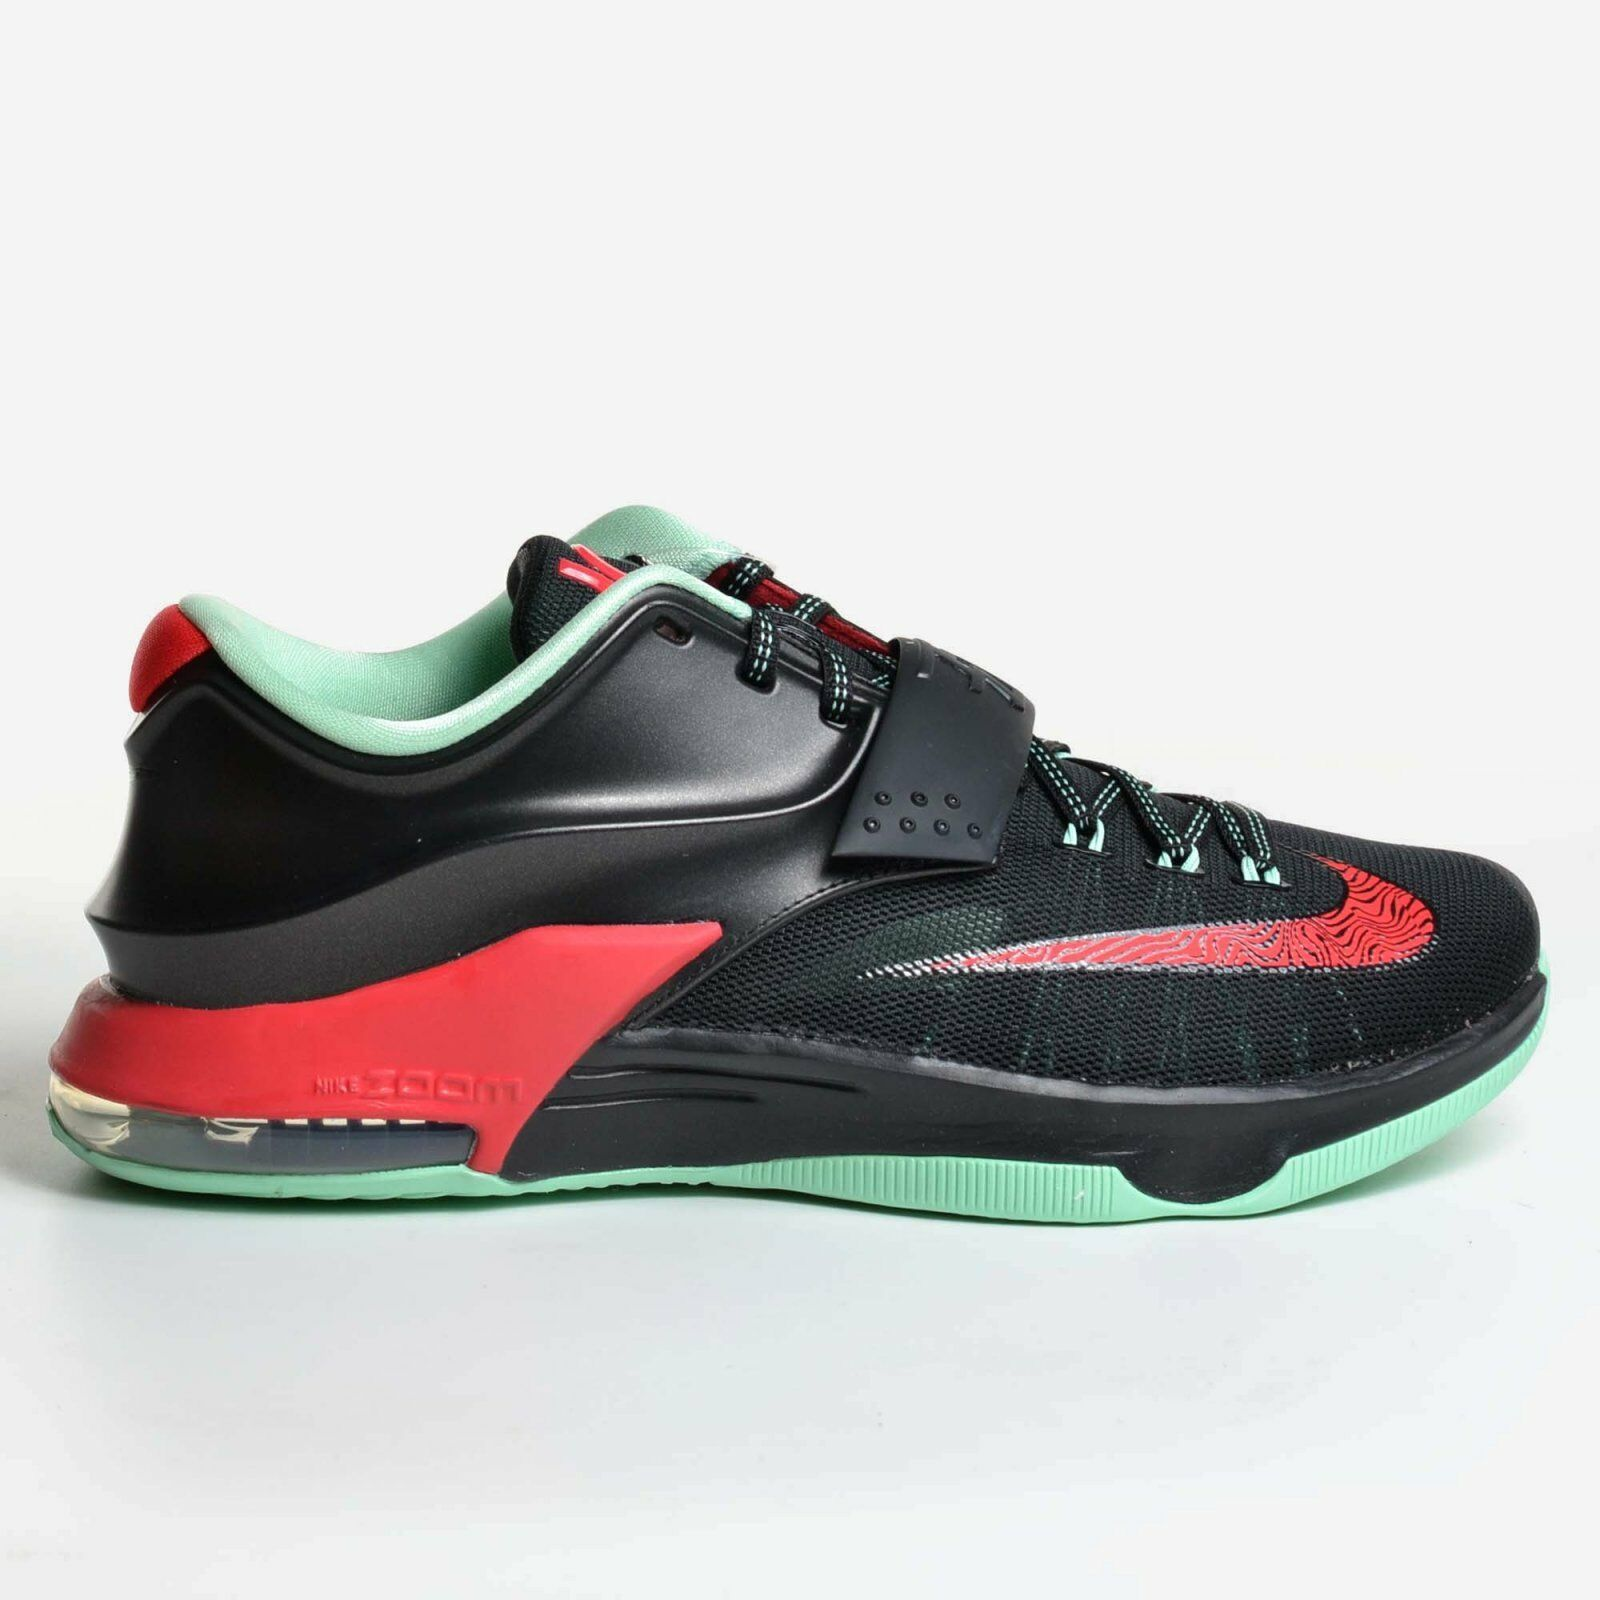 Nike kd 7 ep bad apple schwarz aktion rot 2014 vii mittel mint xdr - vii 2014 ds 653997-063 ca16ab